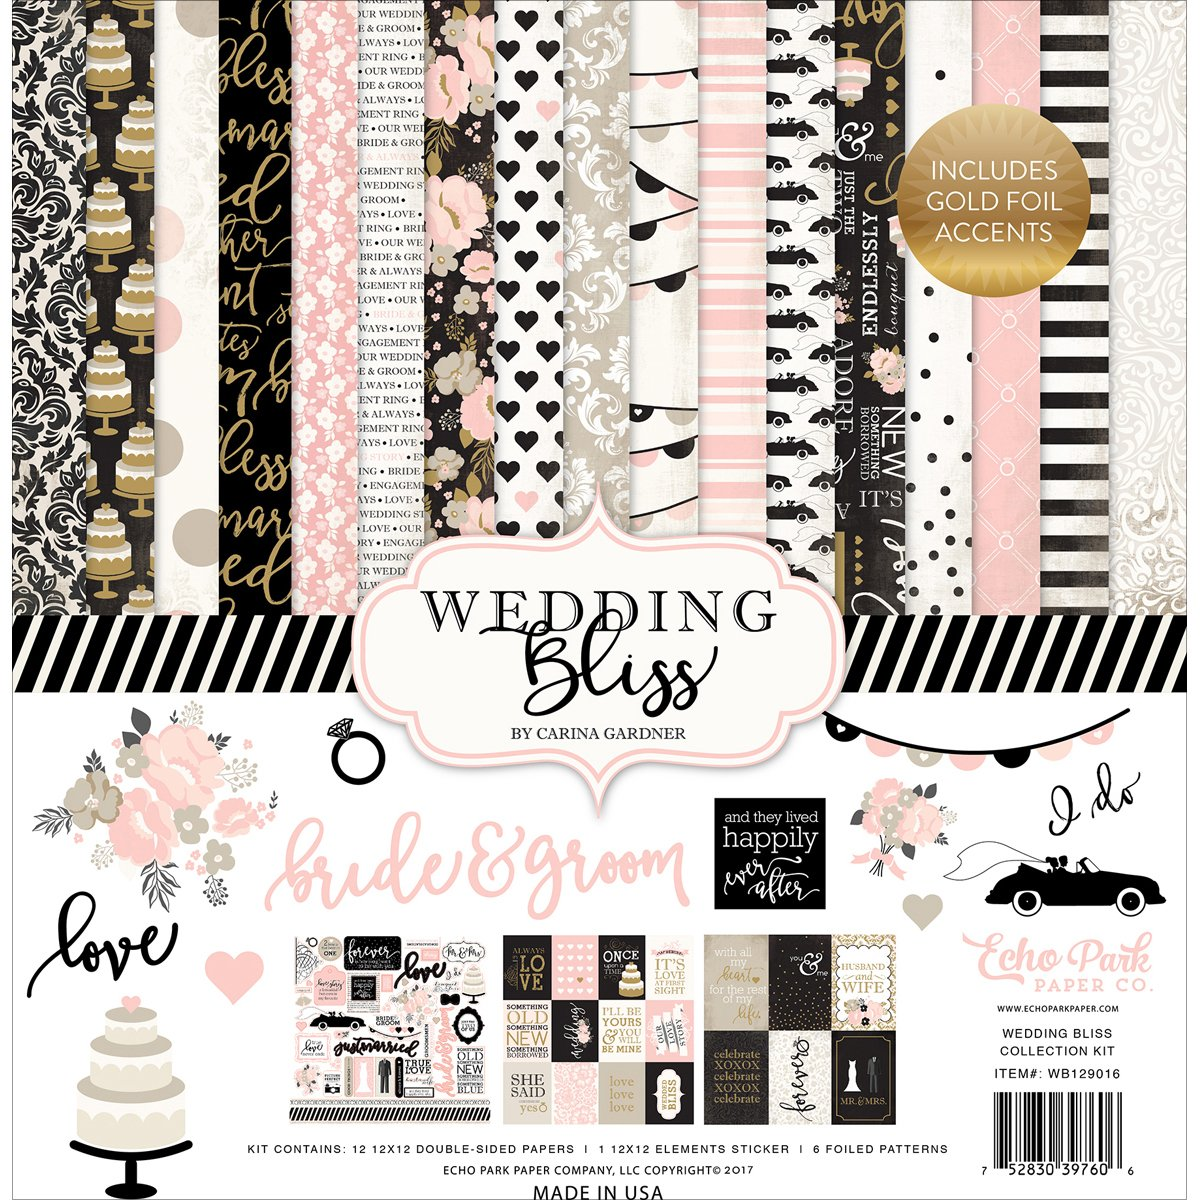 Echo Park Paper Company Wedding Bliss Collection Kit